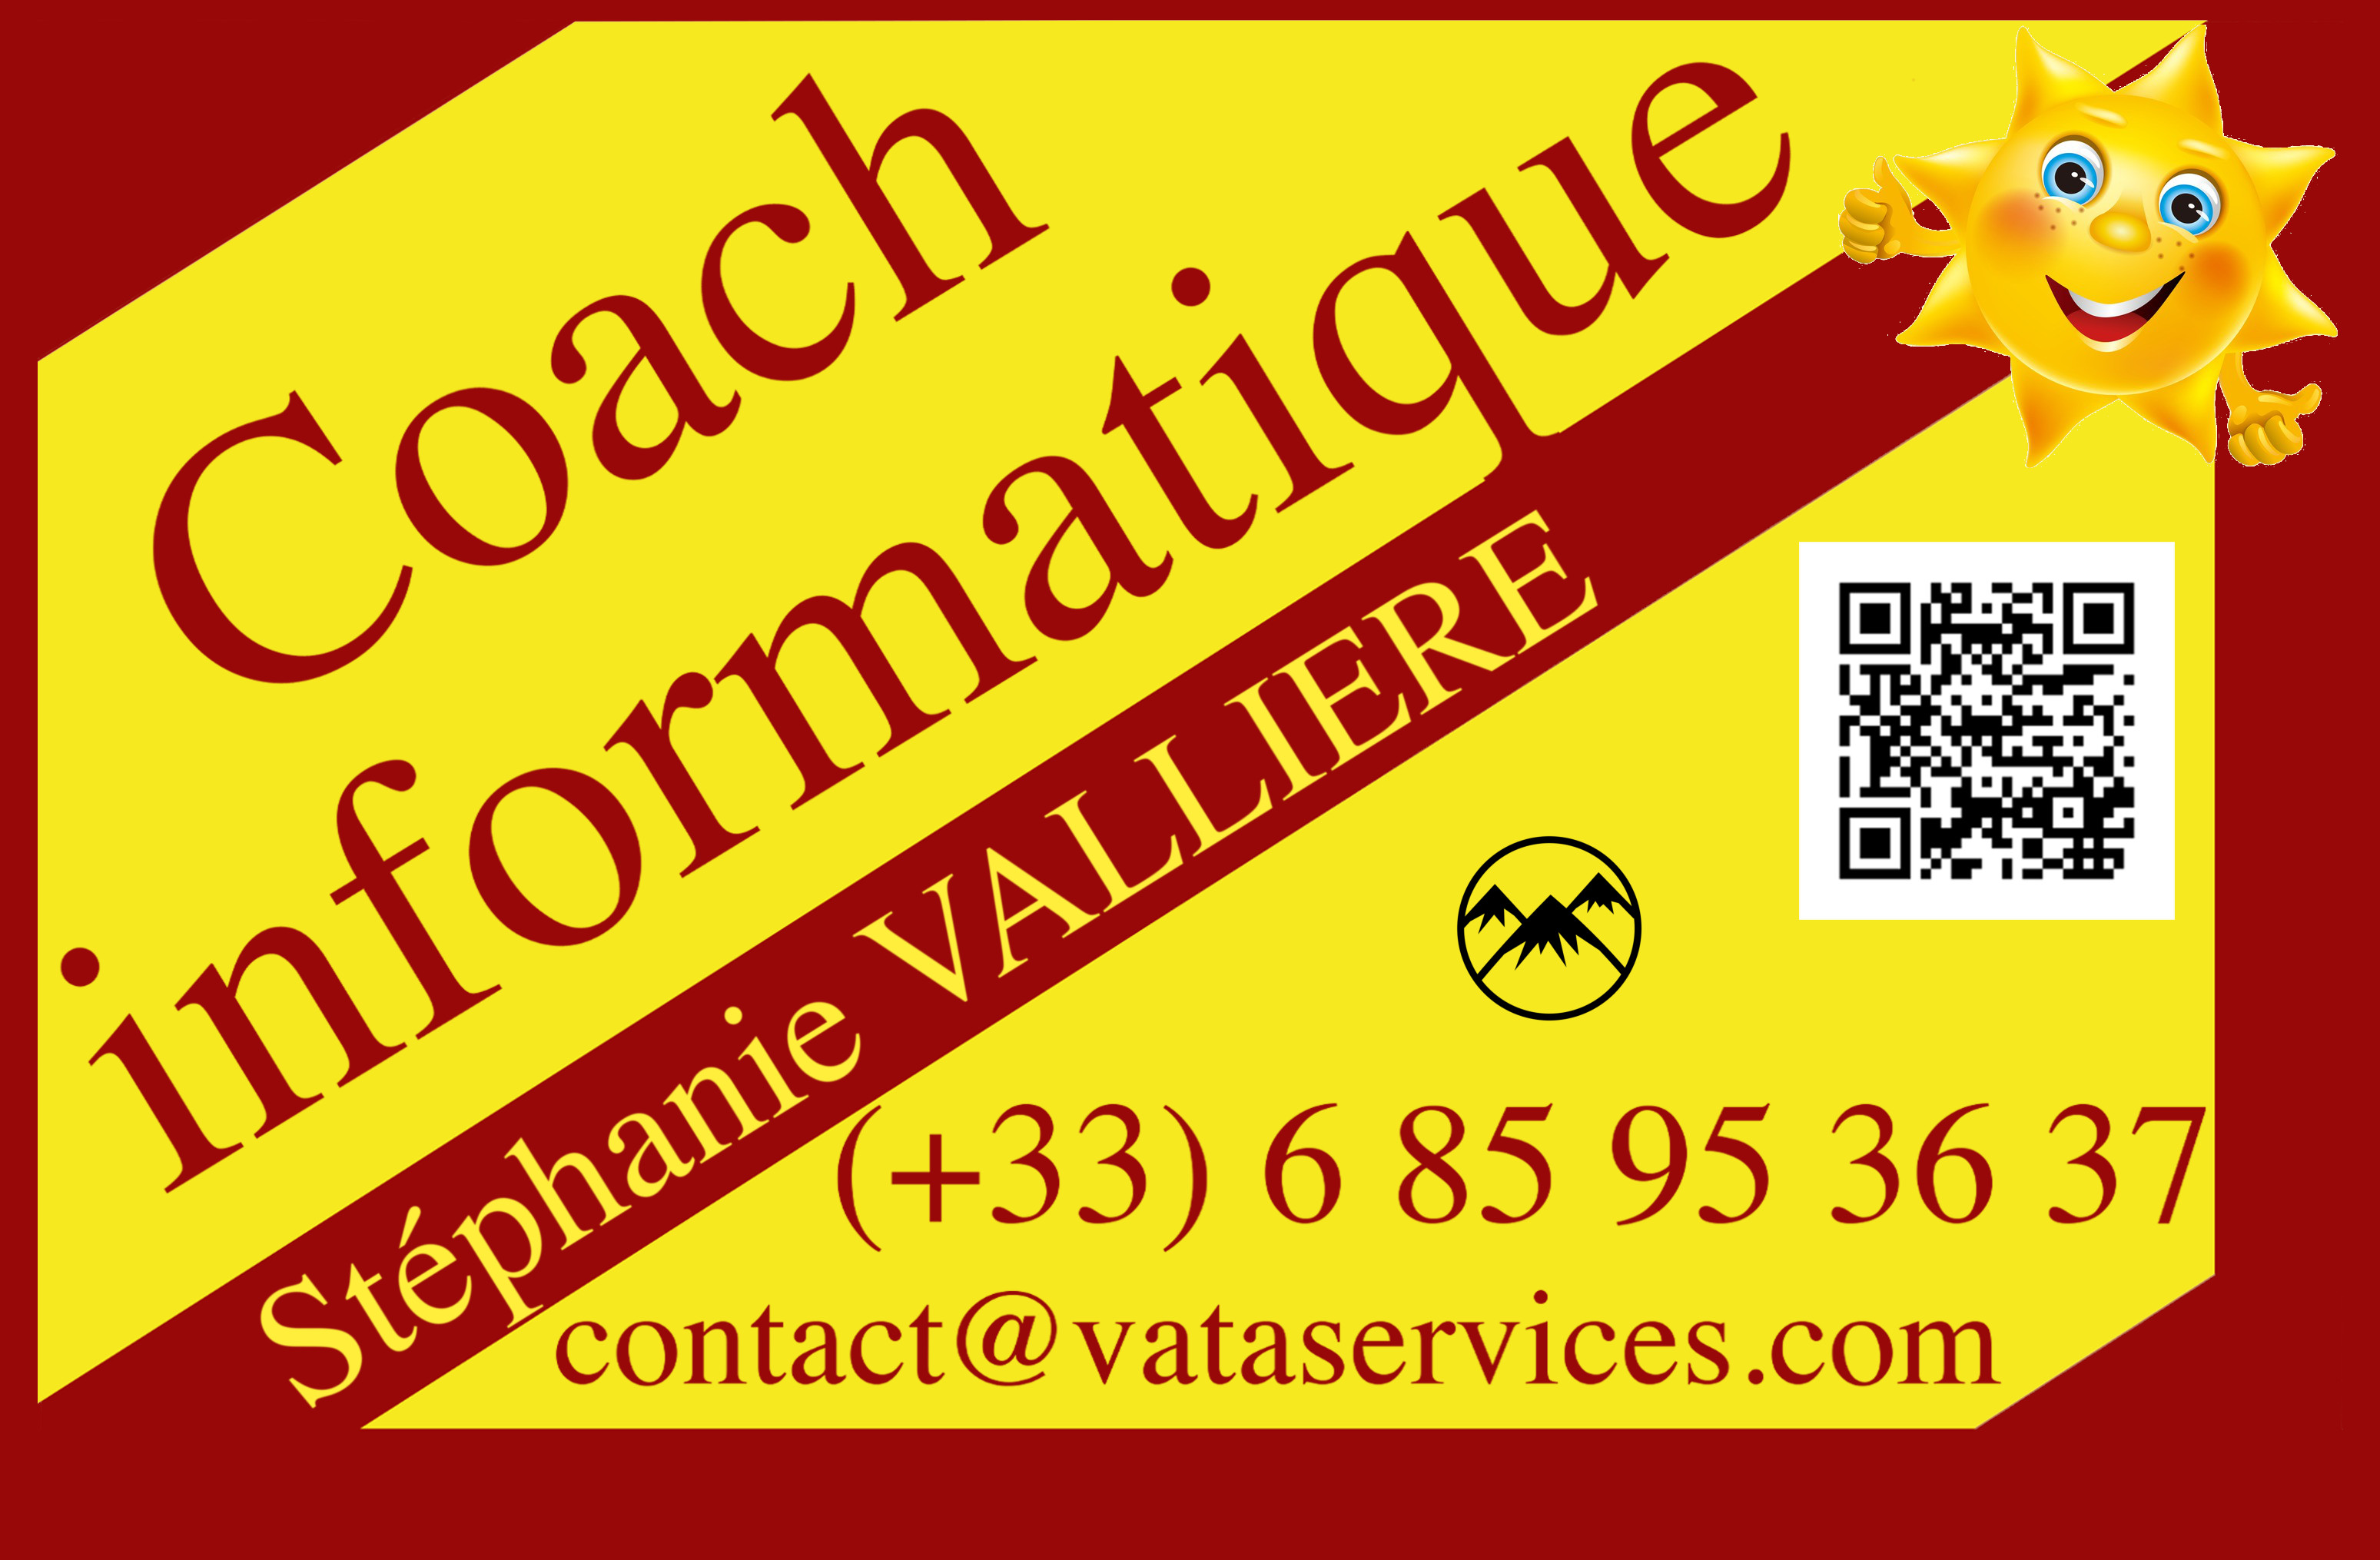 Cartes de visite Coach Informatique Vata